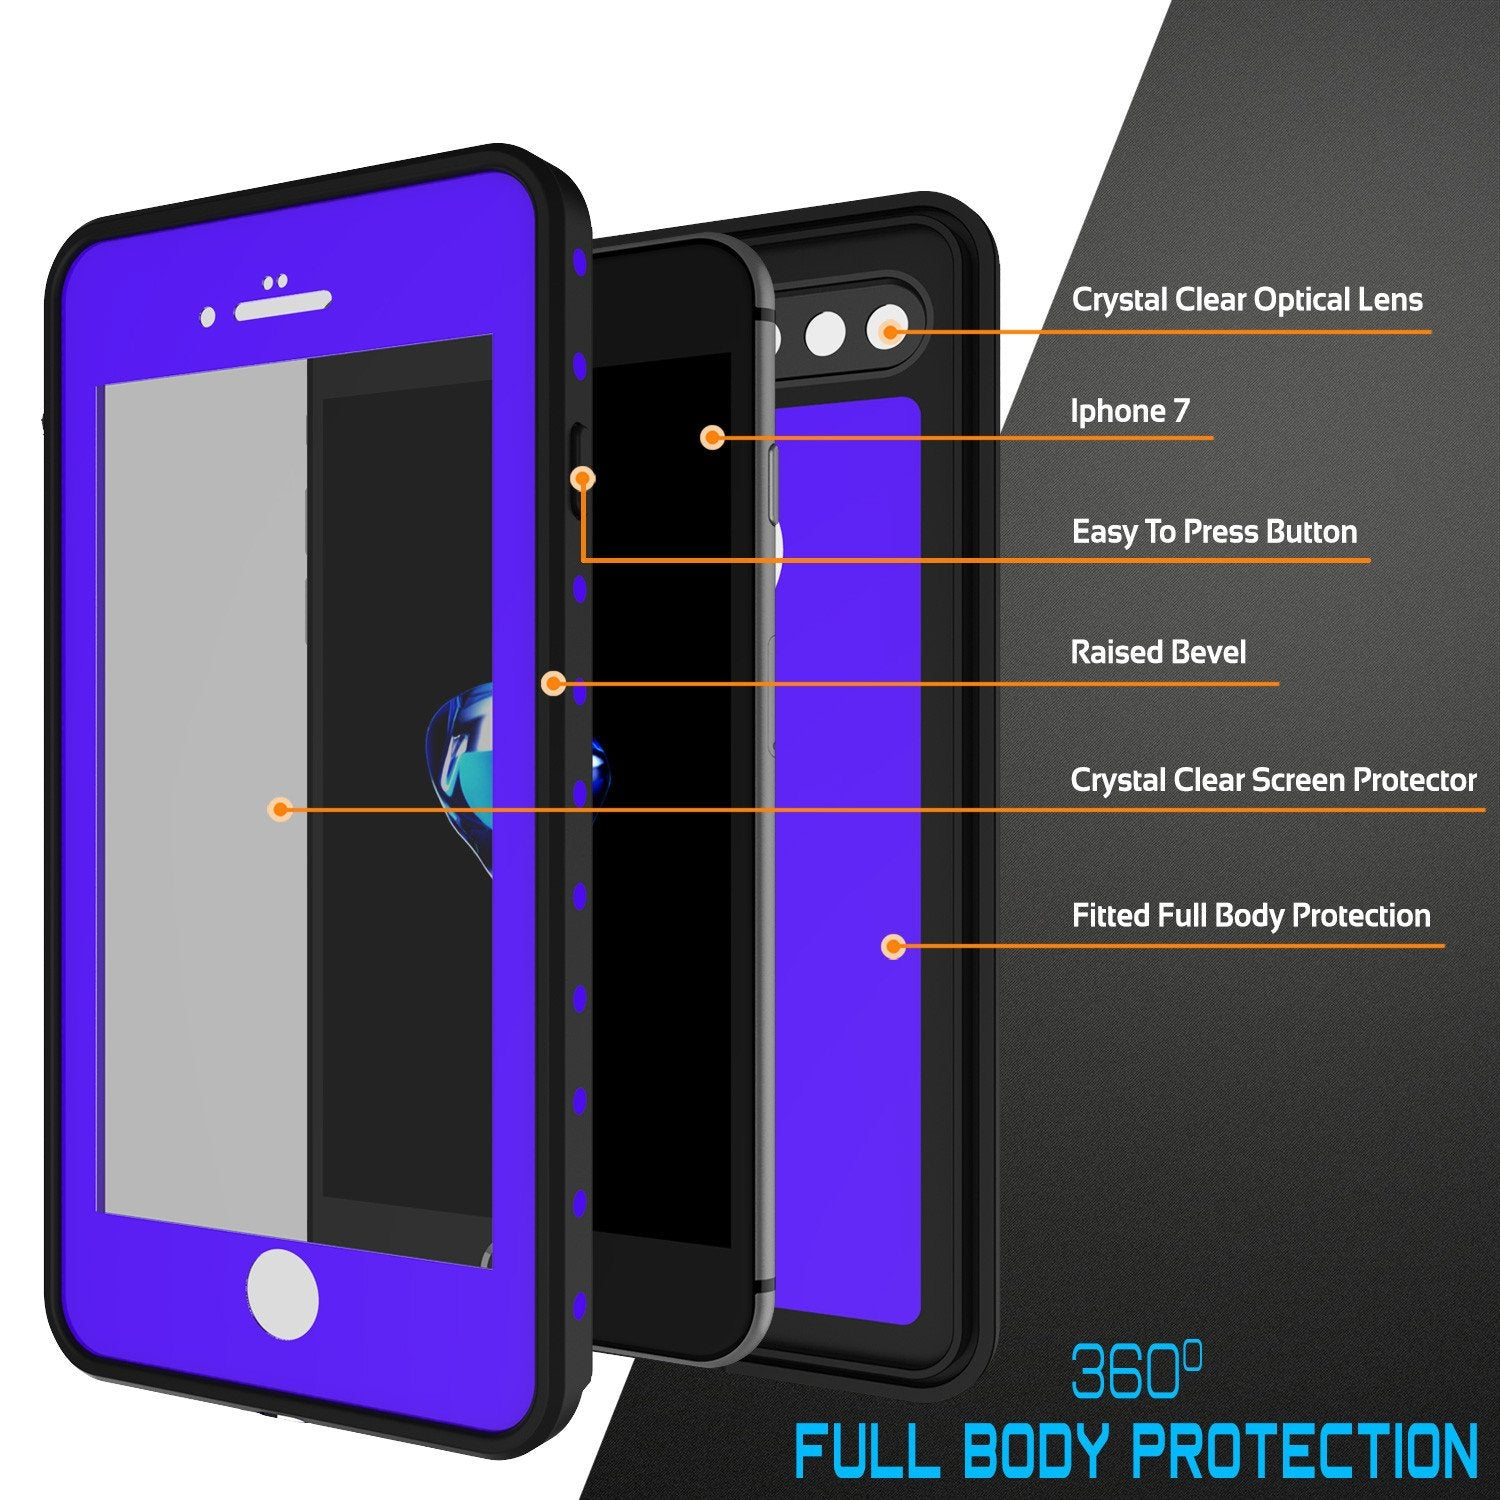 iPhone 7s Plus Waterproof Case, Punkcase [Purple] [StudStar Series] [Slim Fit] [IP68 Certified] [Shockproof] [Dirtproof] [Snowproof] Armor Cover for Apple iPhone 7 Plus & 7s +